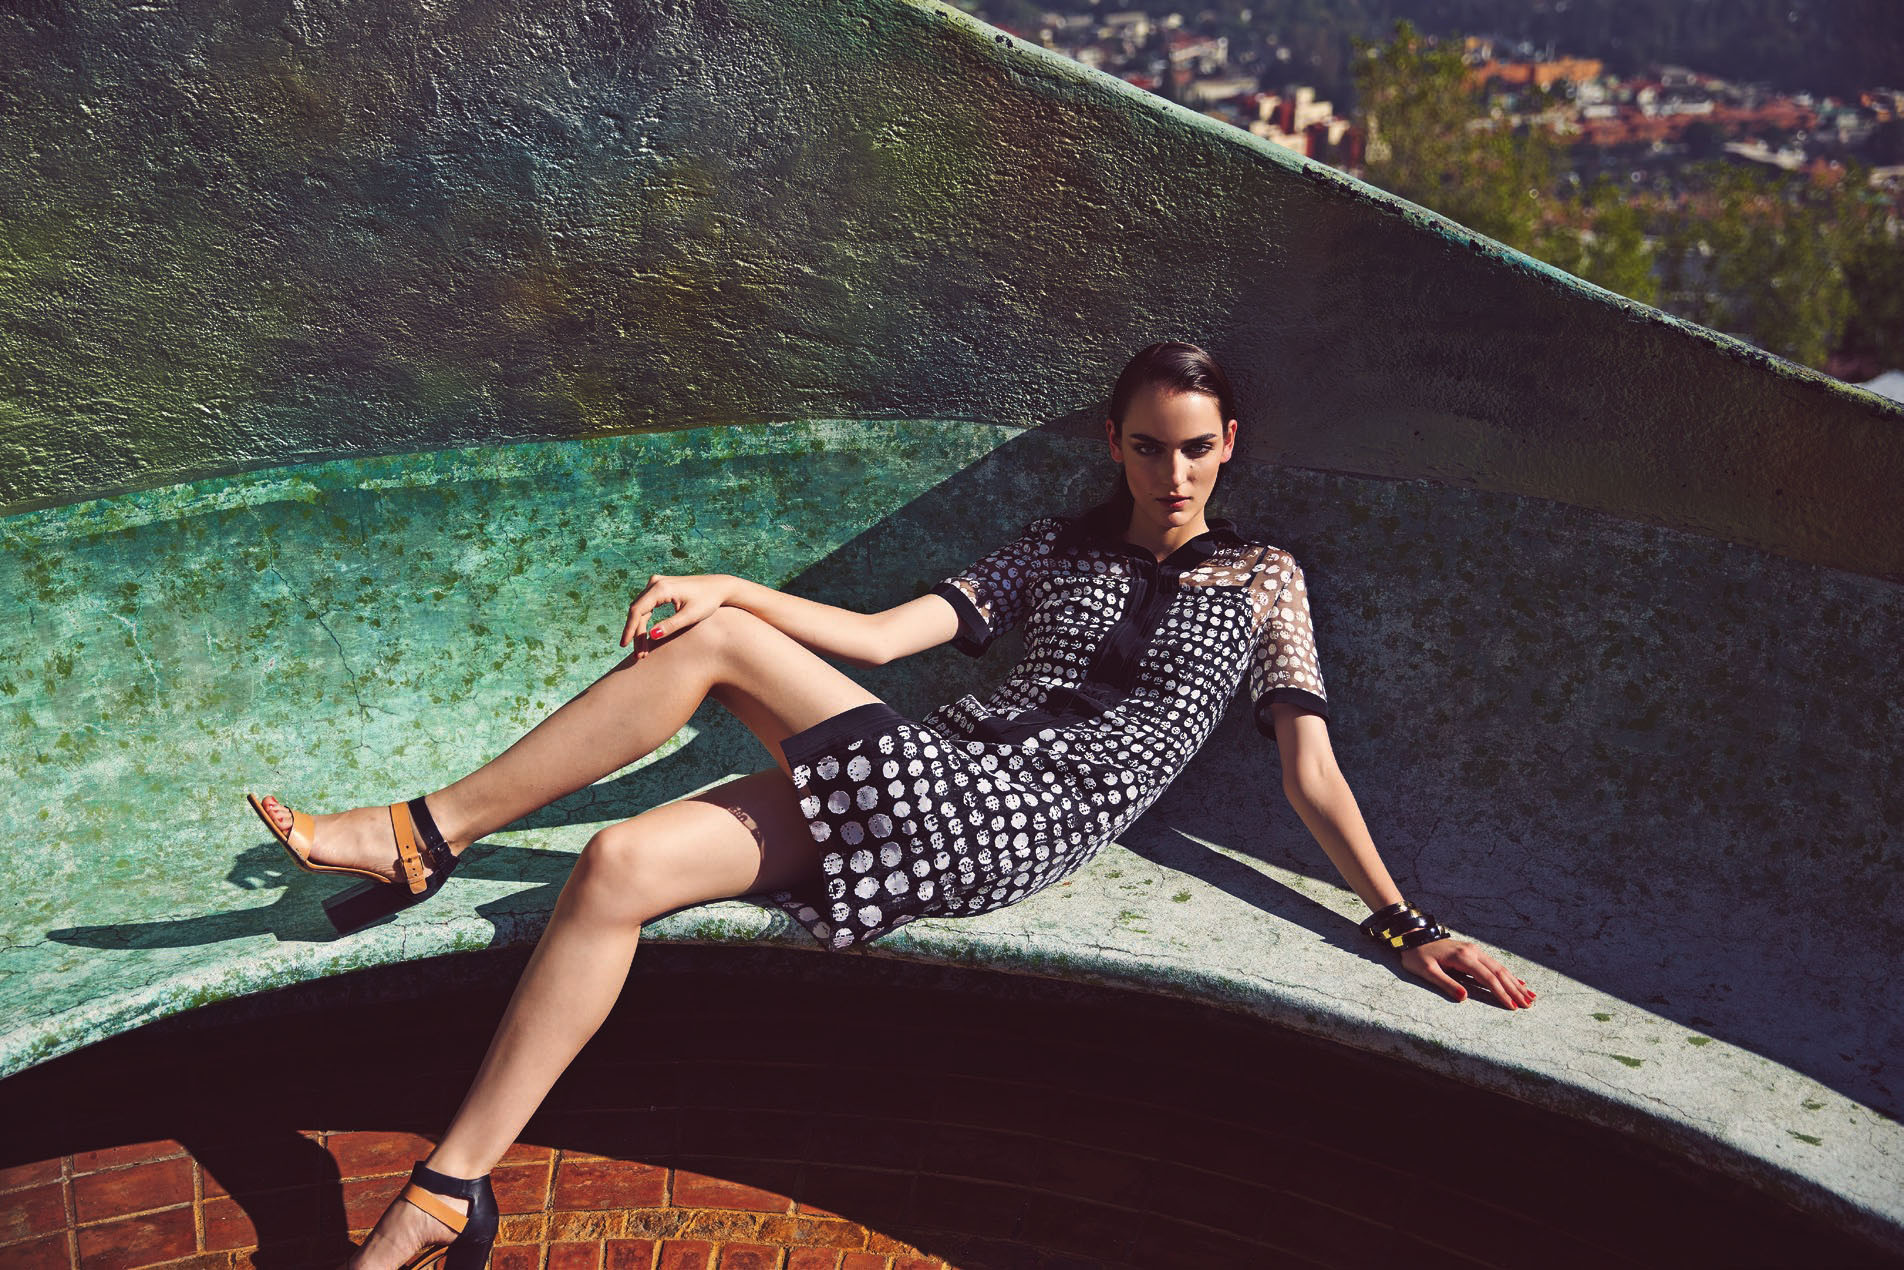 zuzanna-bijoch-by-david-bellemere-for-neiman-marcus-april-2014-14